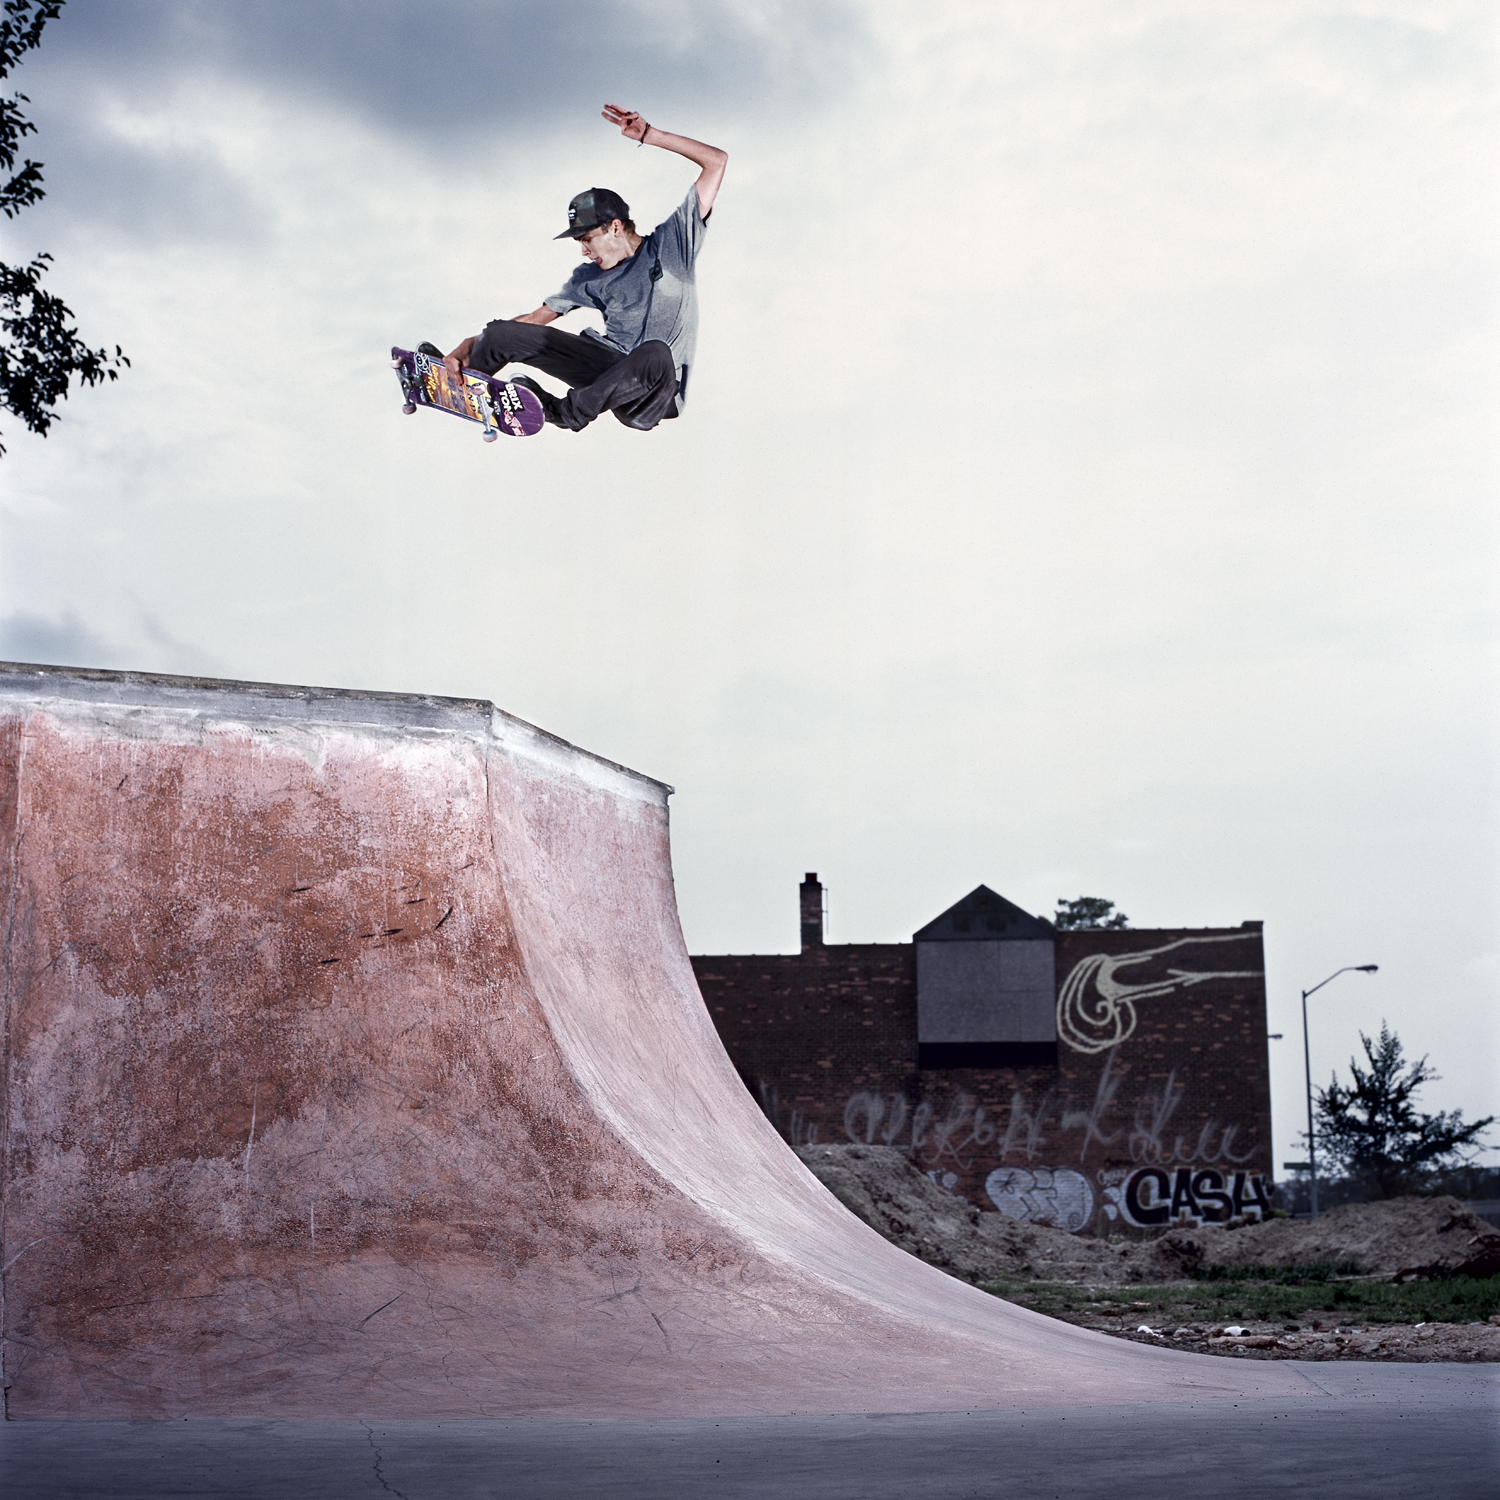 Sam Lind, Frontside Transfer, Detroit, MI 2012